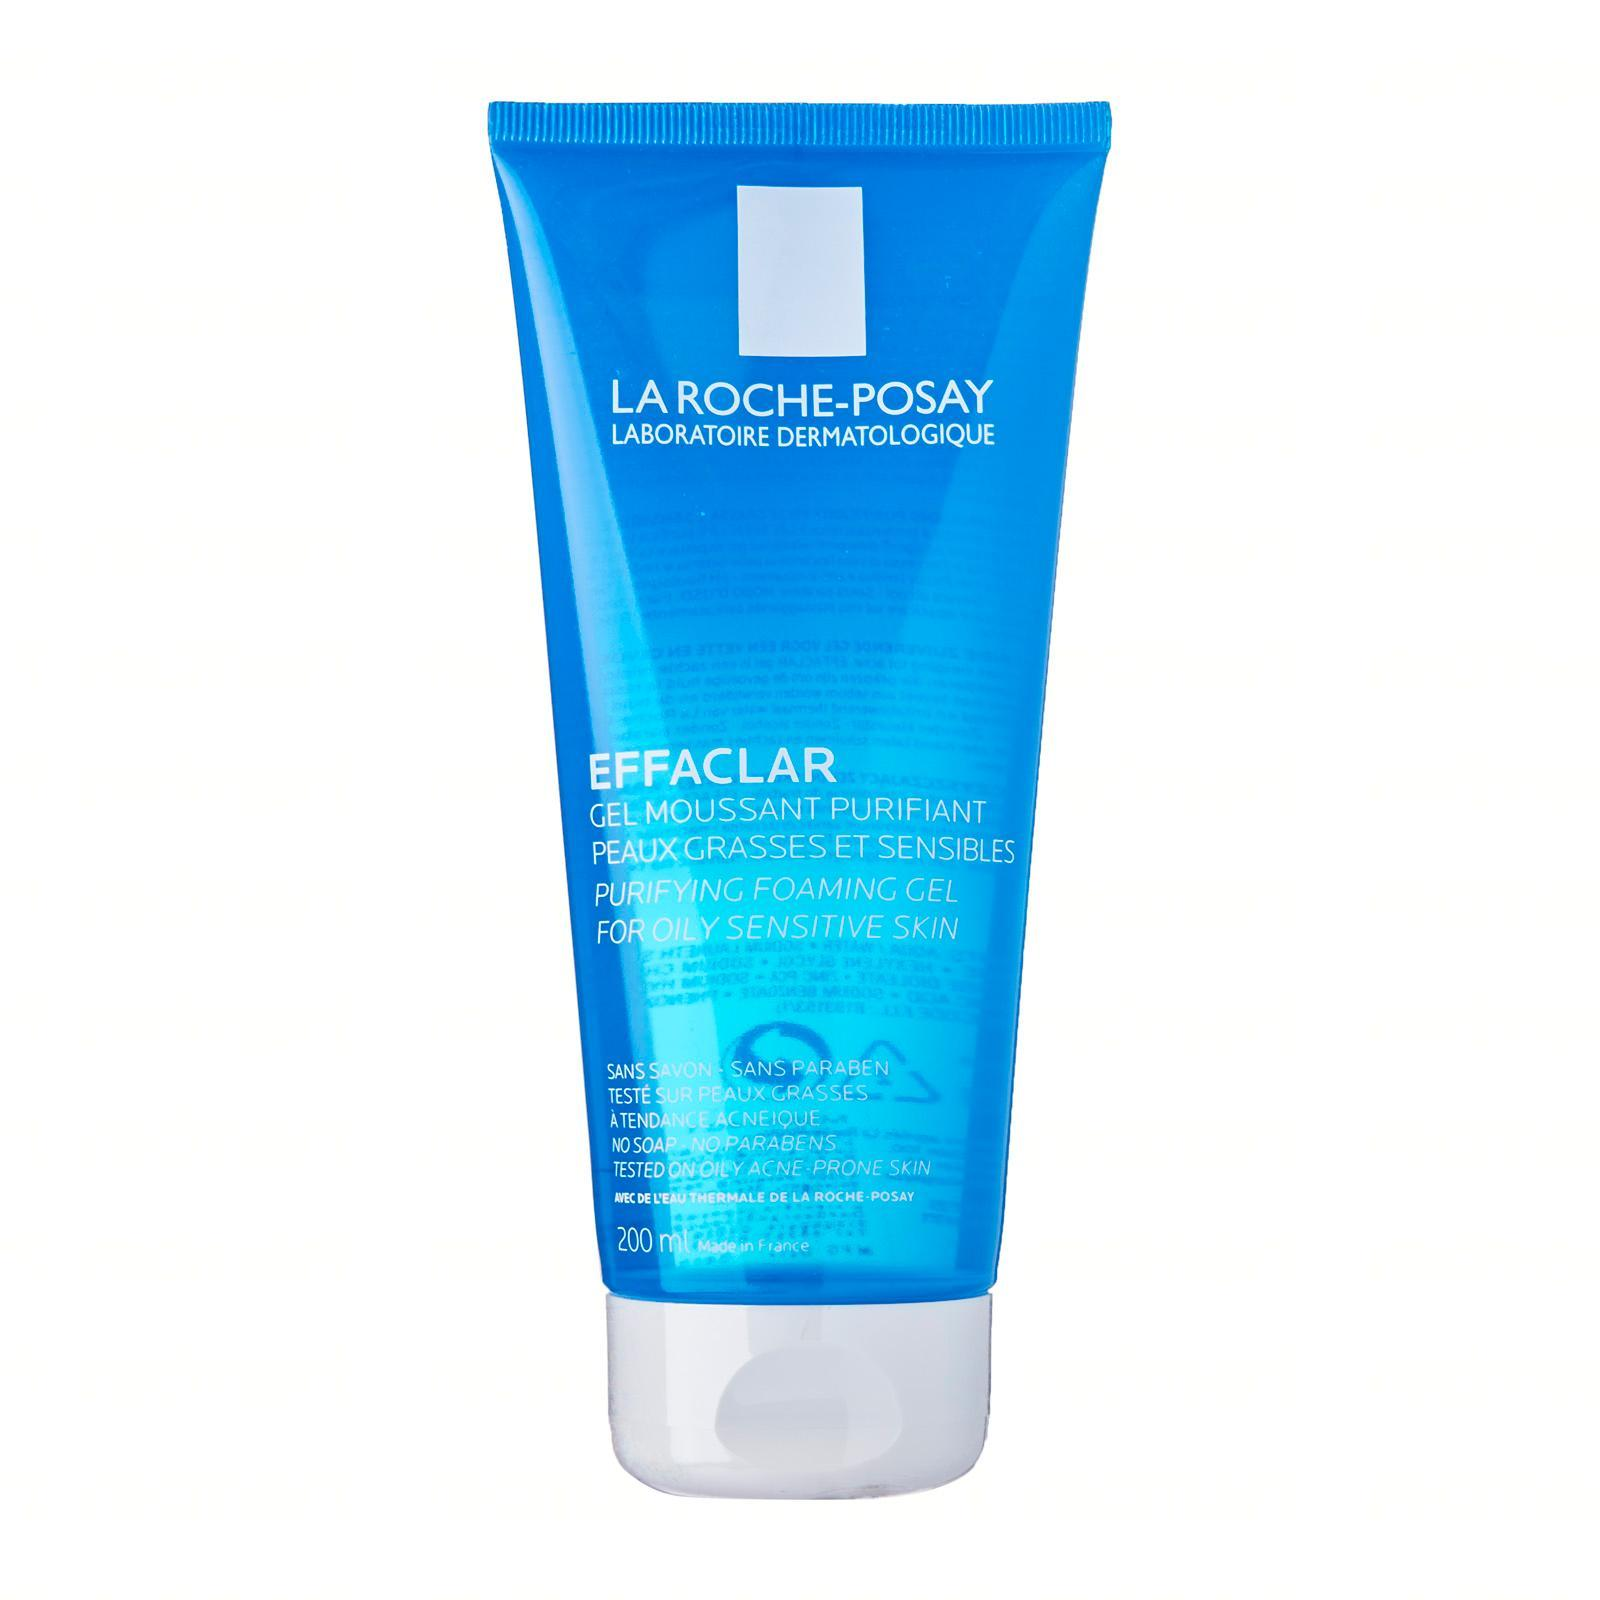 La Roche Posay Effaclar Foaming Purifying Gel